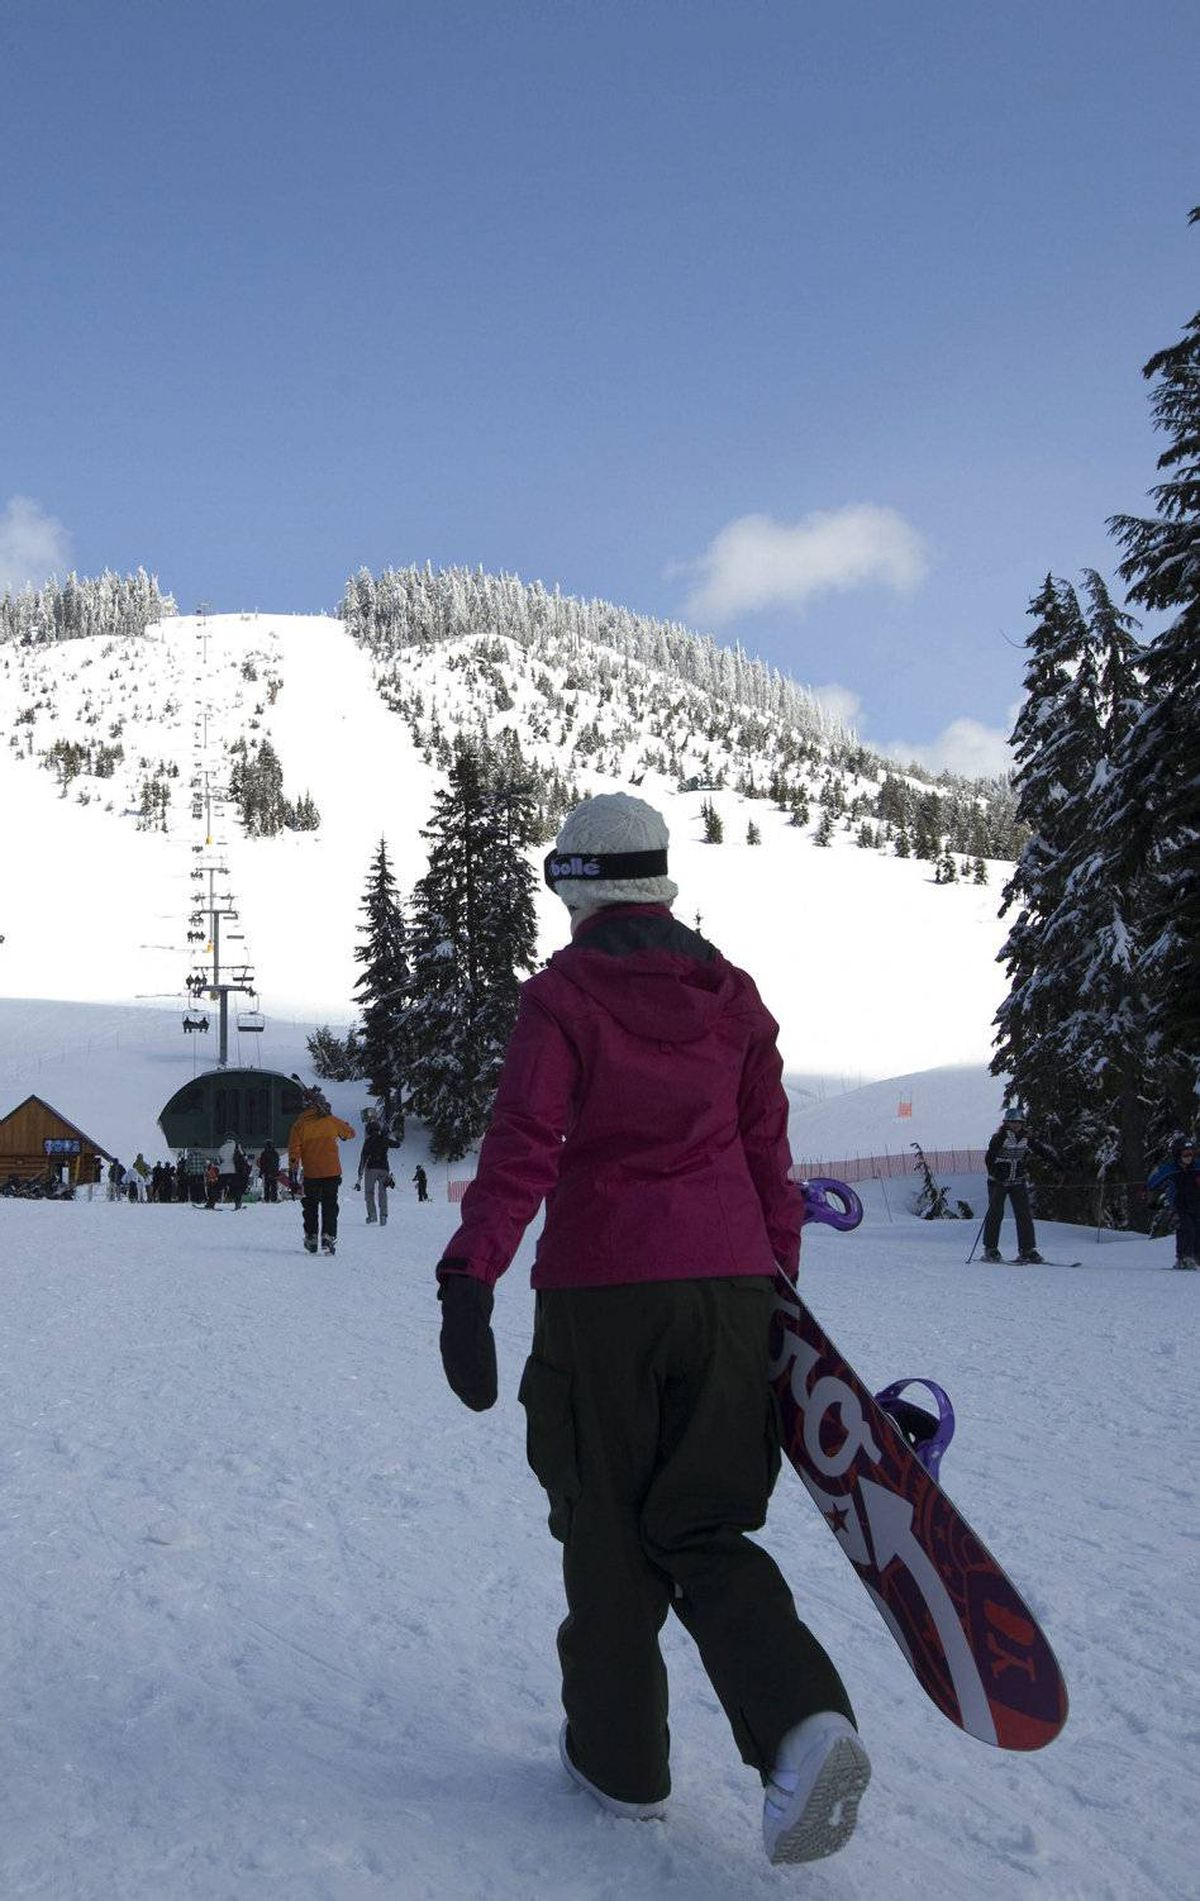 Cypress Mountain Outdoorsy types should head here, just 30 minutes outside Vancouver. Conditions have been great on the slopes and cross-country trails. If the kids aren't into skiing, they can horse around in the Snowtube Park. After the slopes, unwind at the Sandman Hotel in Vancouver (average price: $95 a night). cypressmountain.com